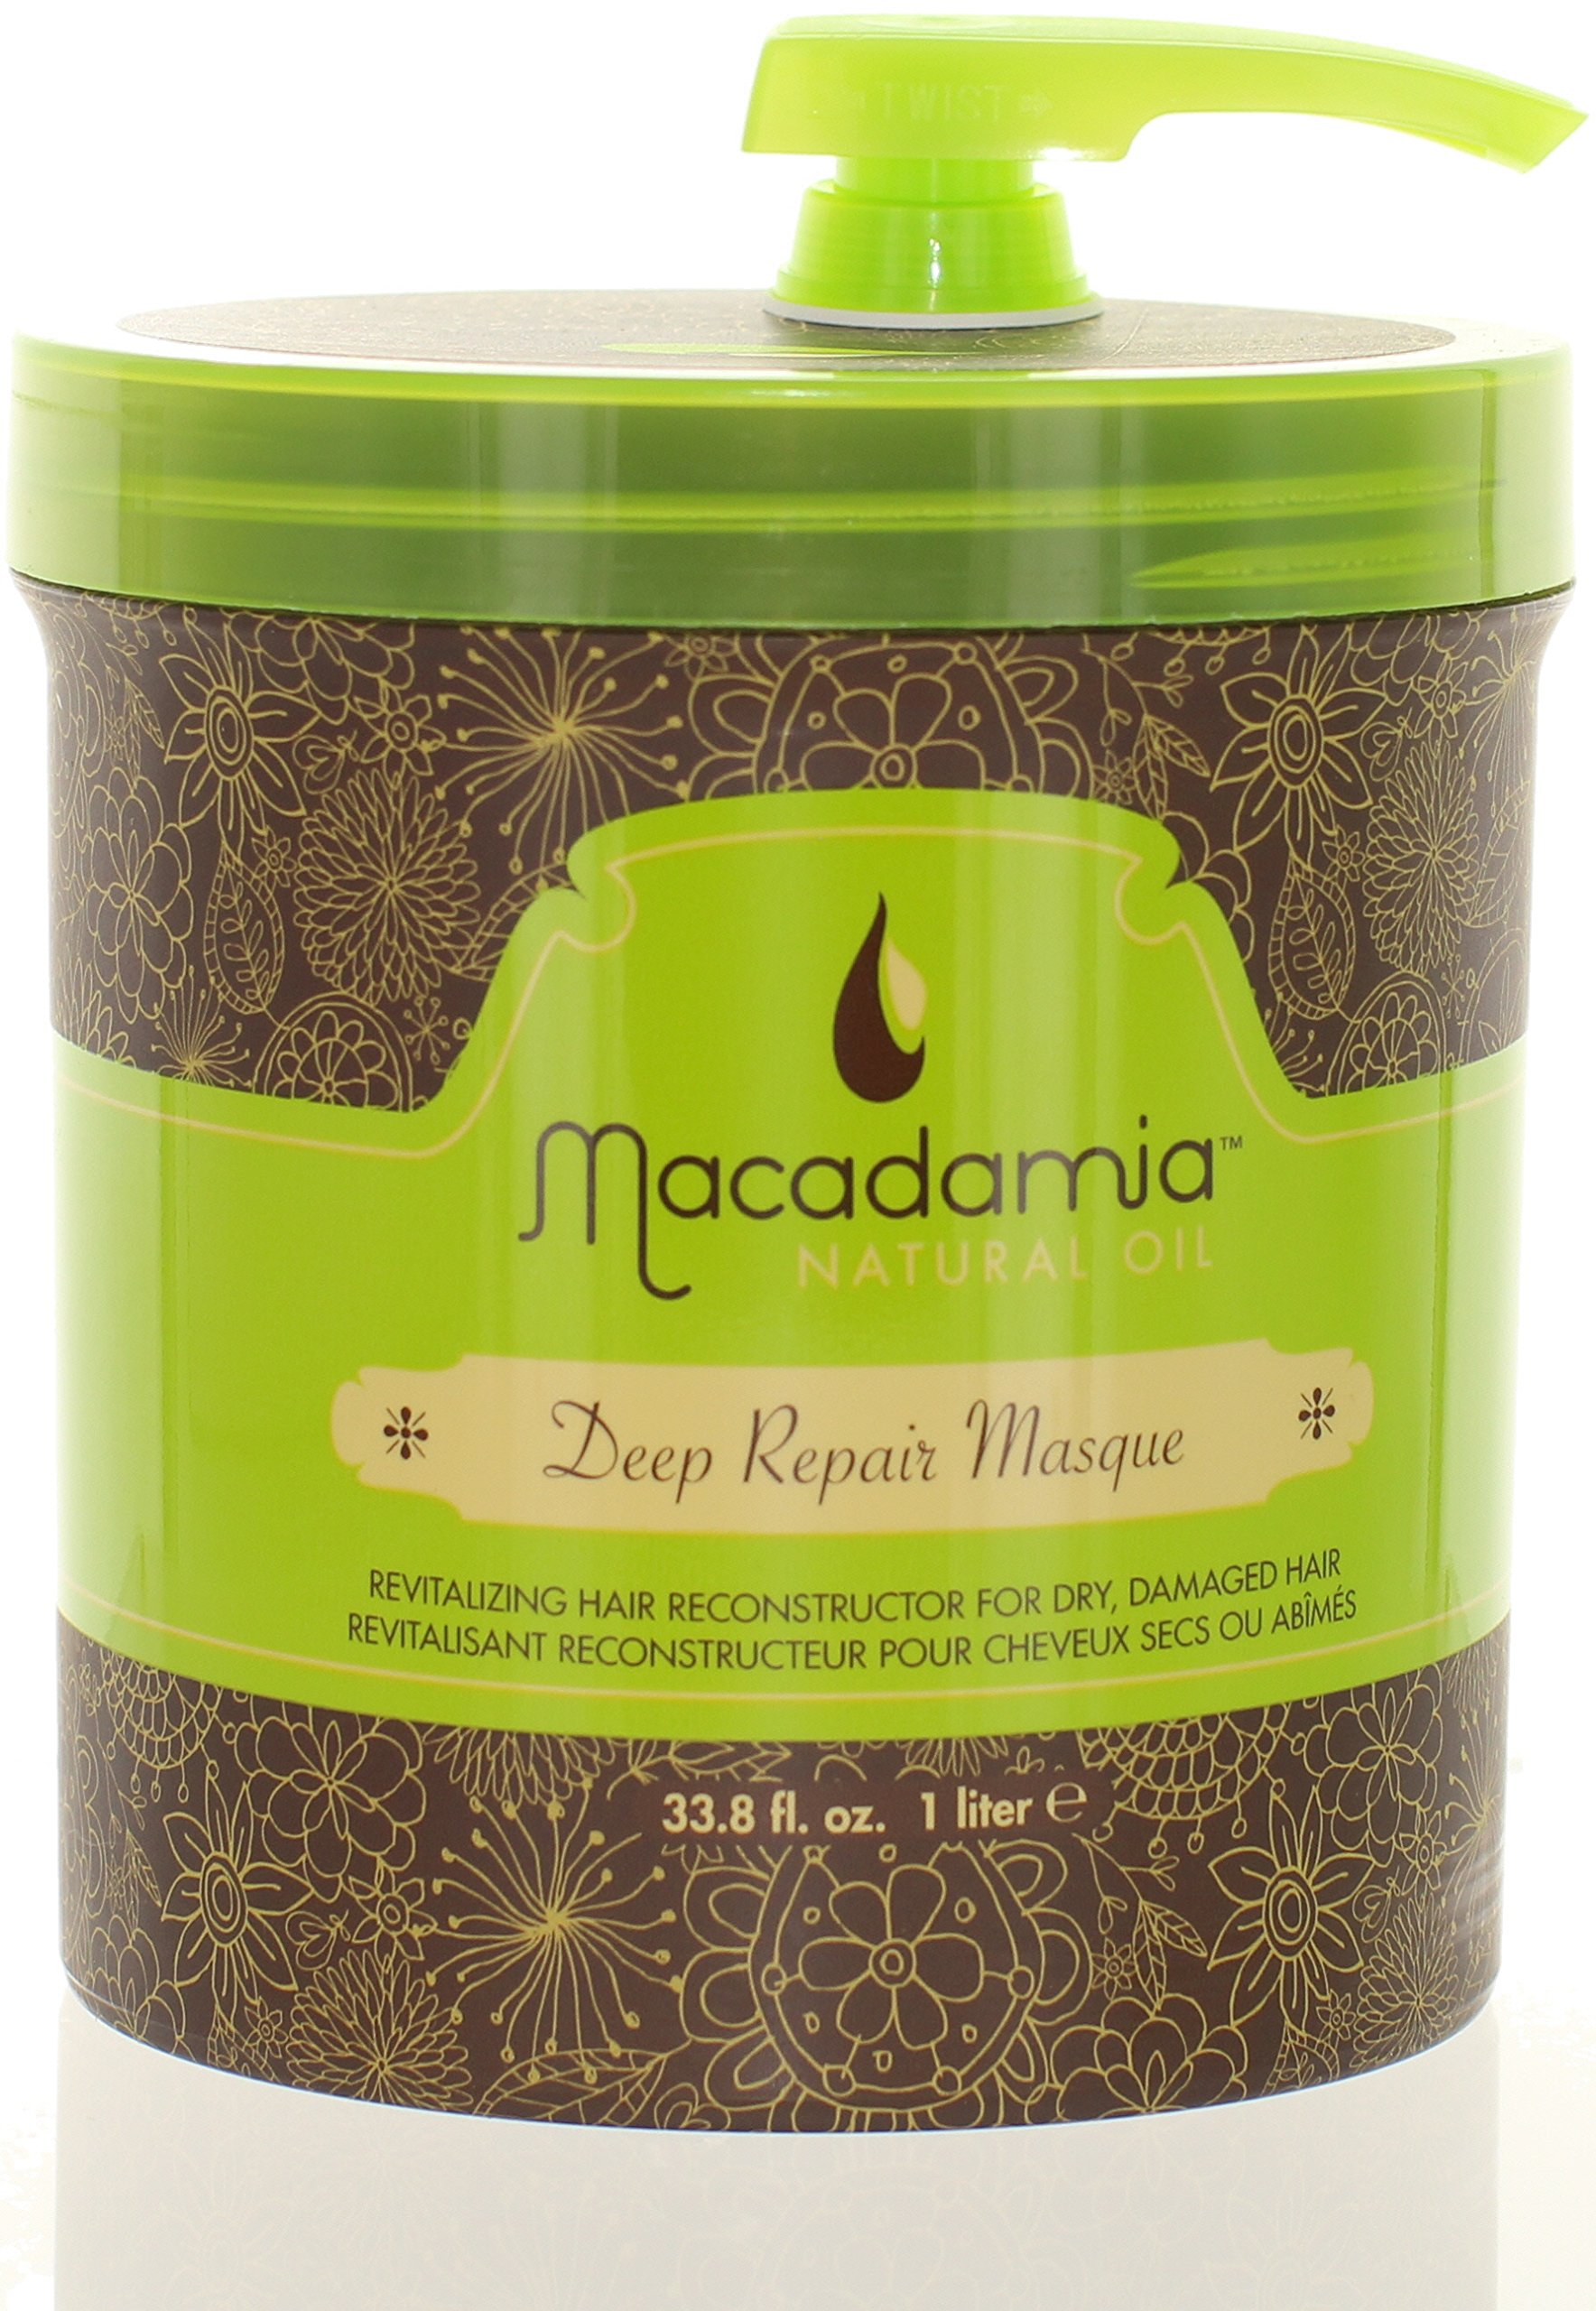 Macadamia Natural Oil Deep Repair Masque 33.8oz